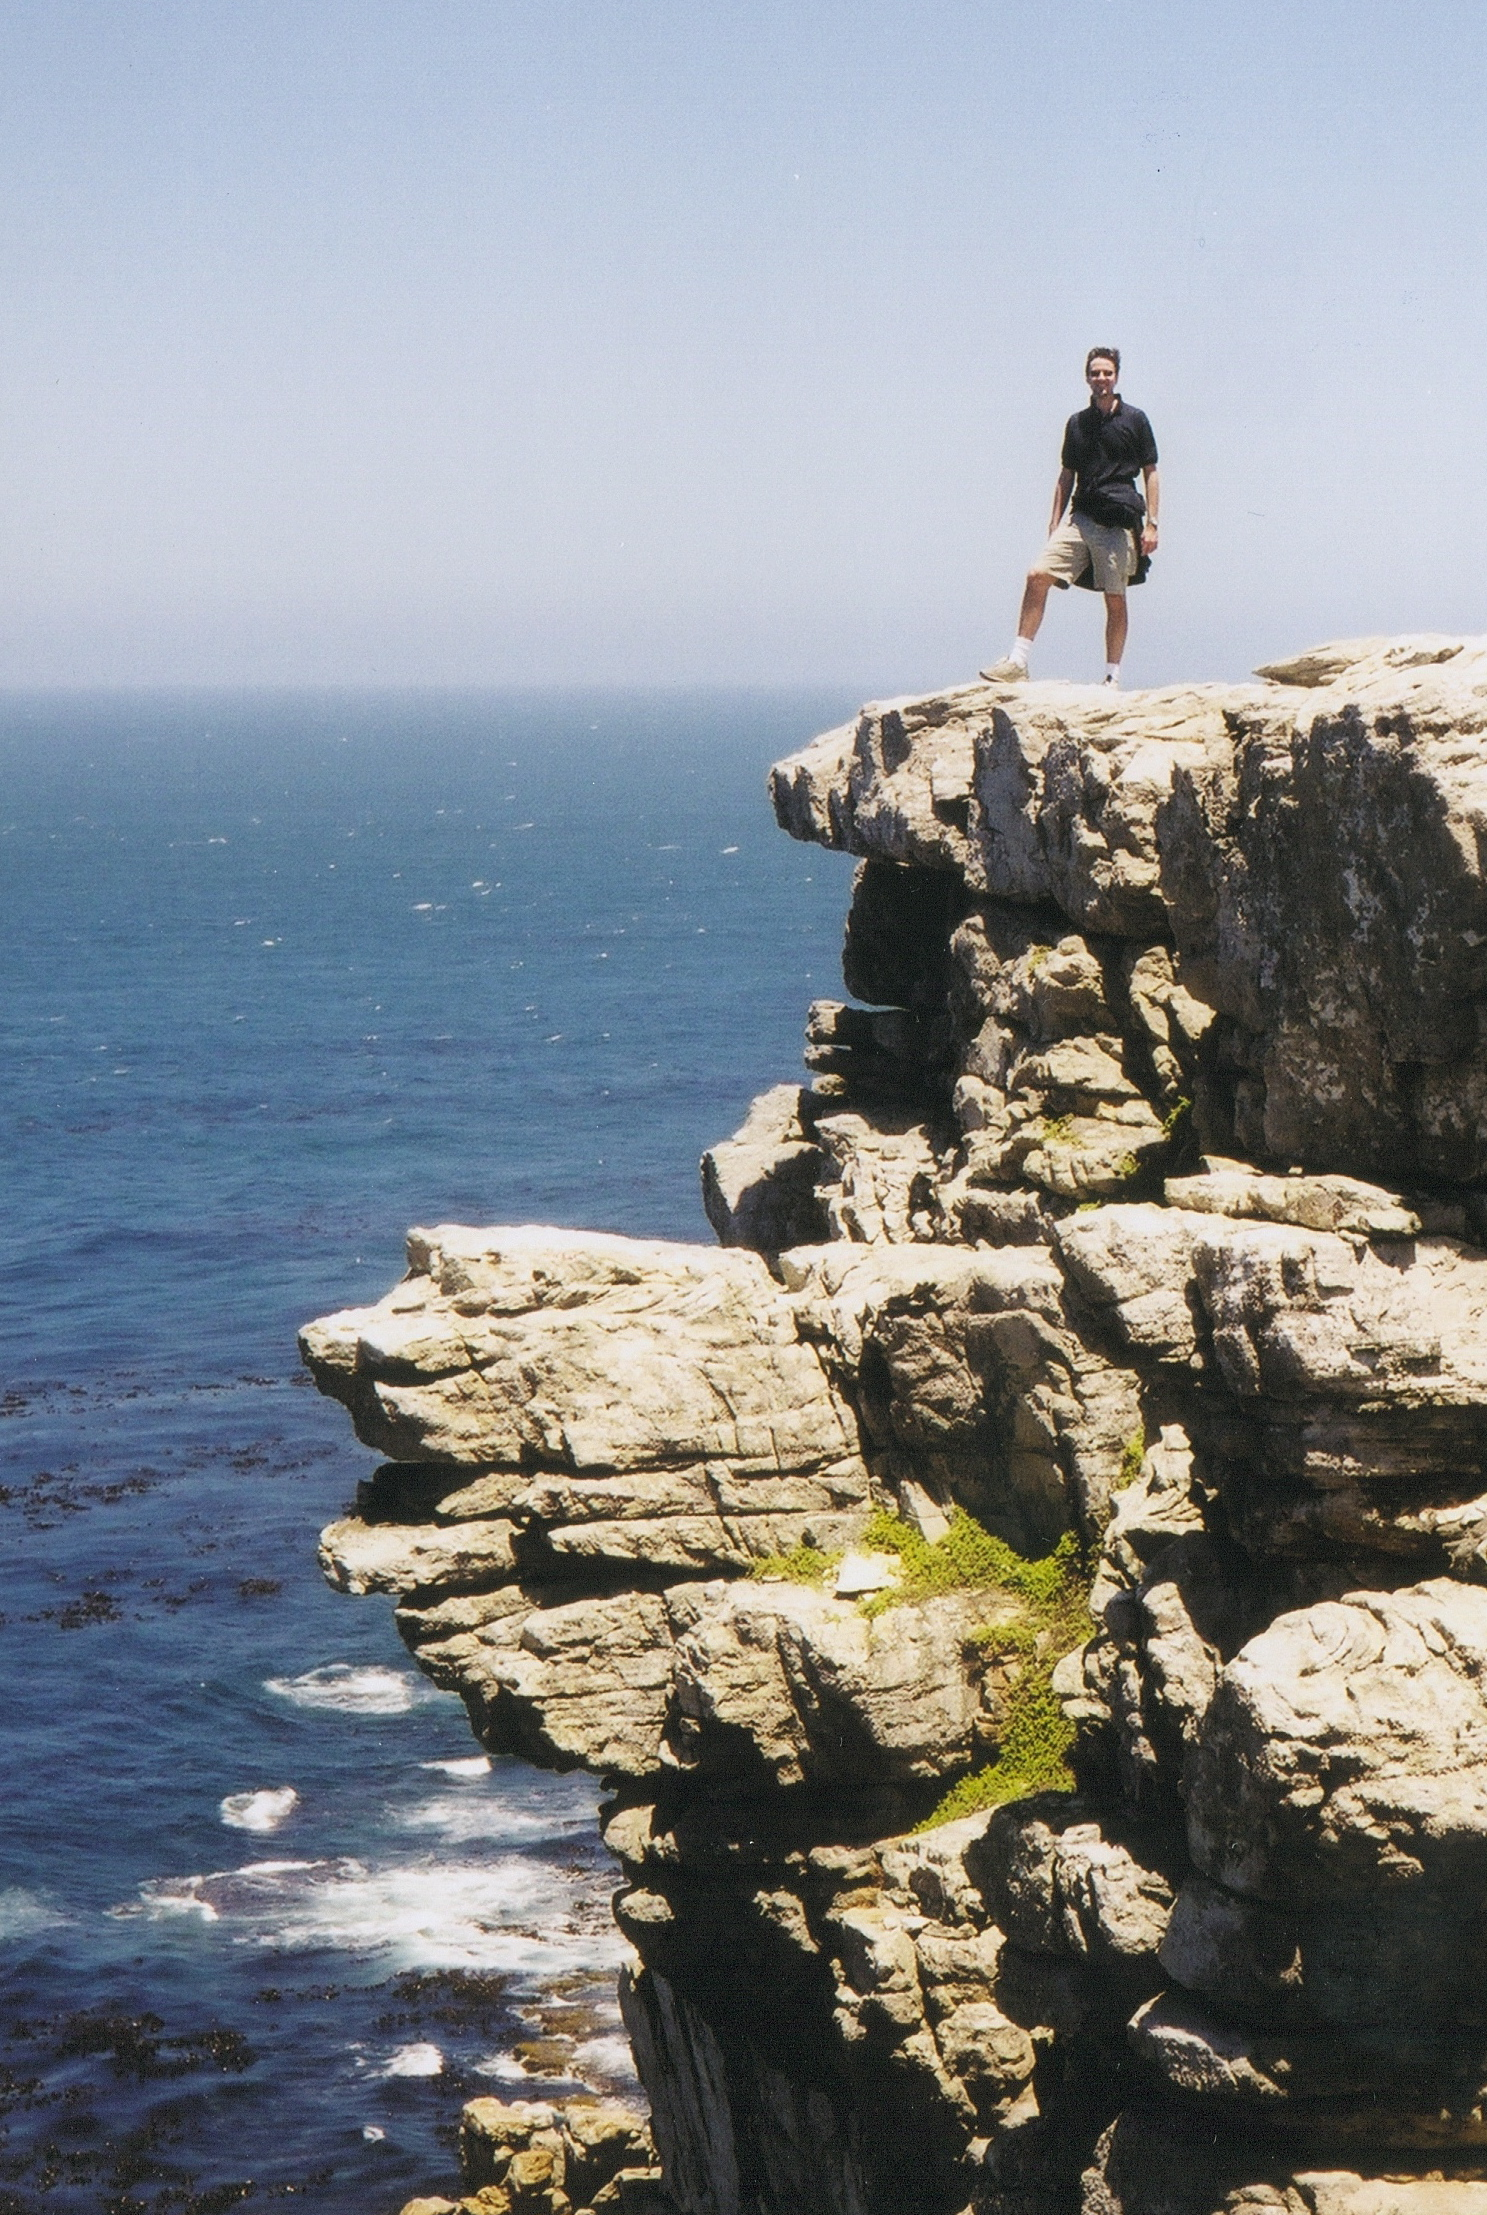 At the Cape of Good Hope, South Africa